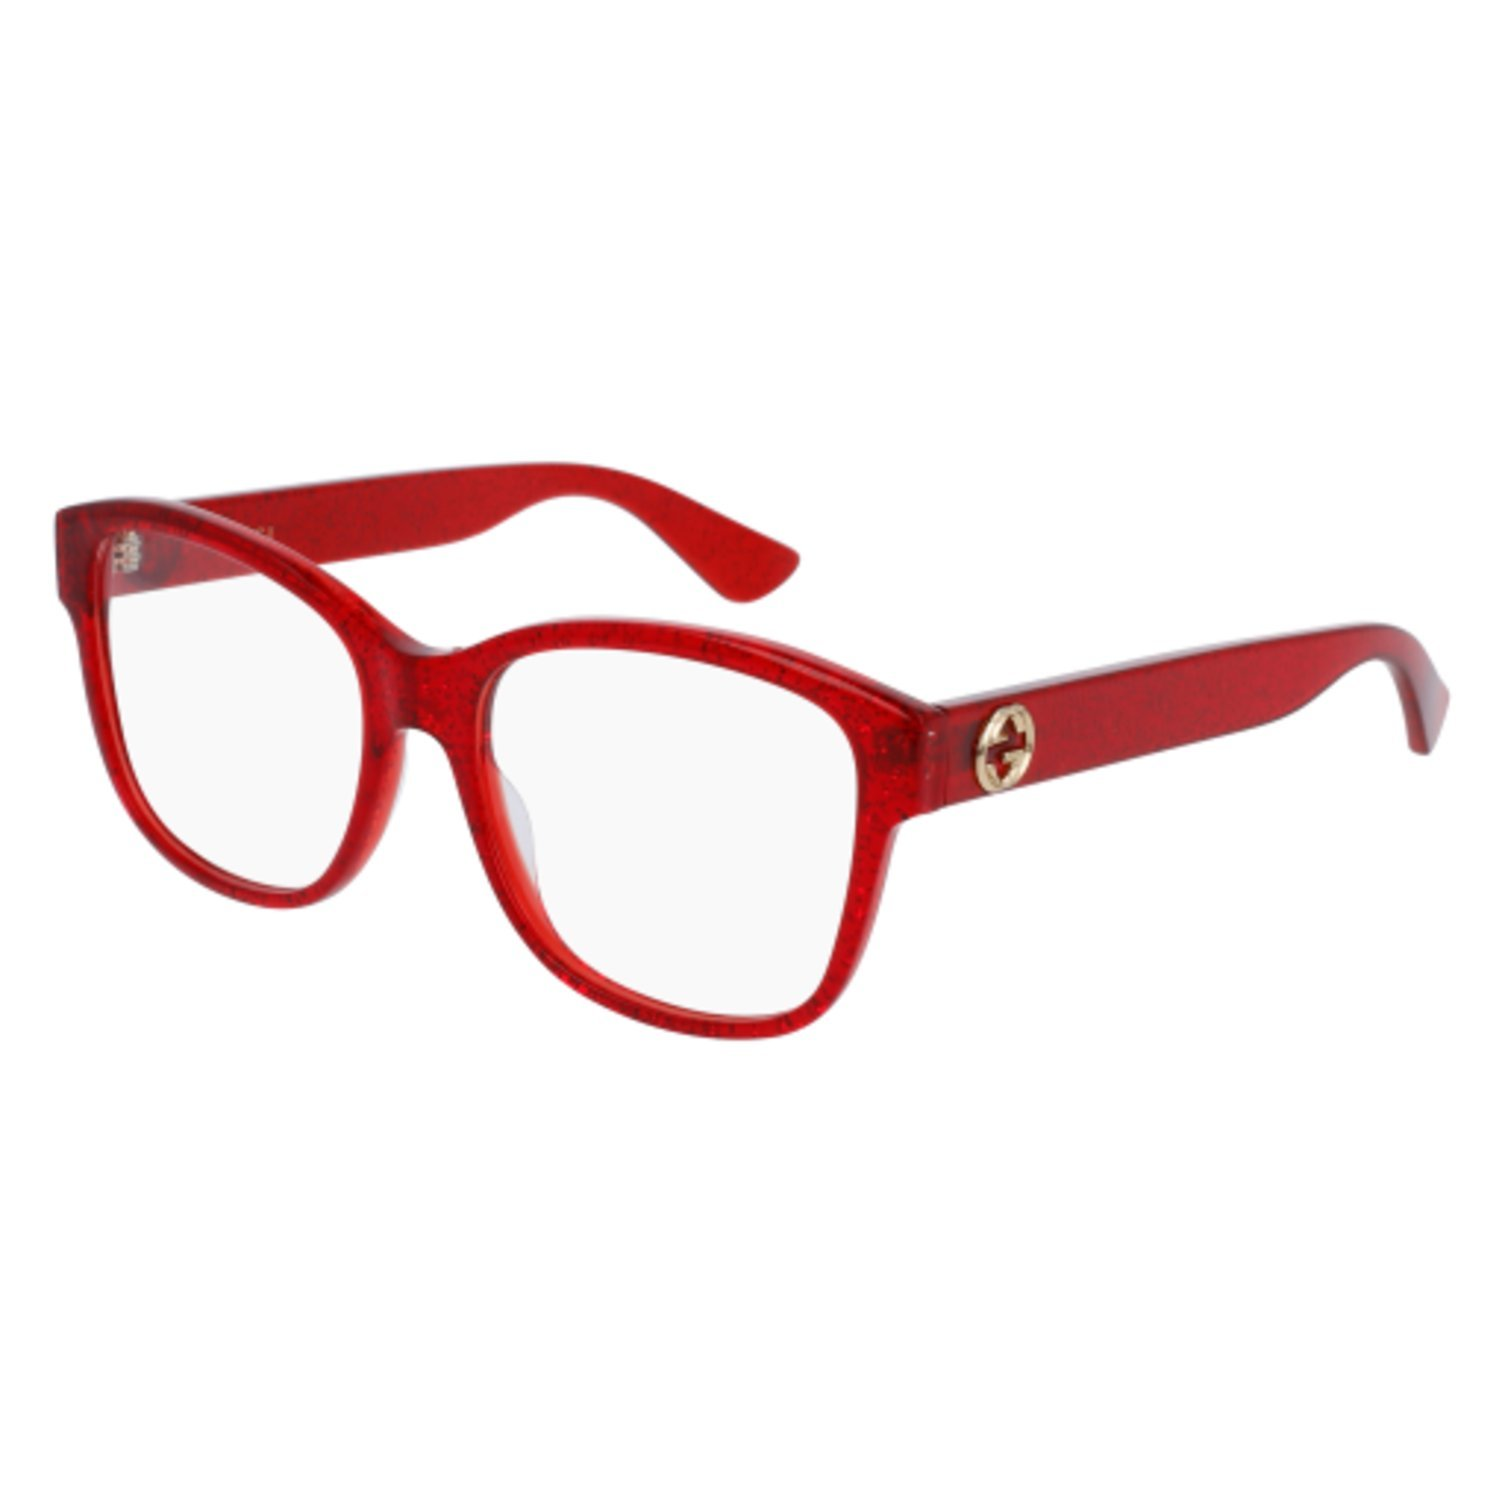 Eyeglasses Gucci GG 0038 O- 004 004 RED / RED by Gucci